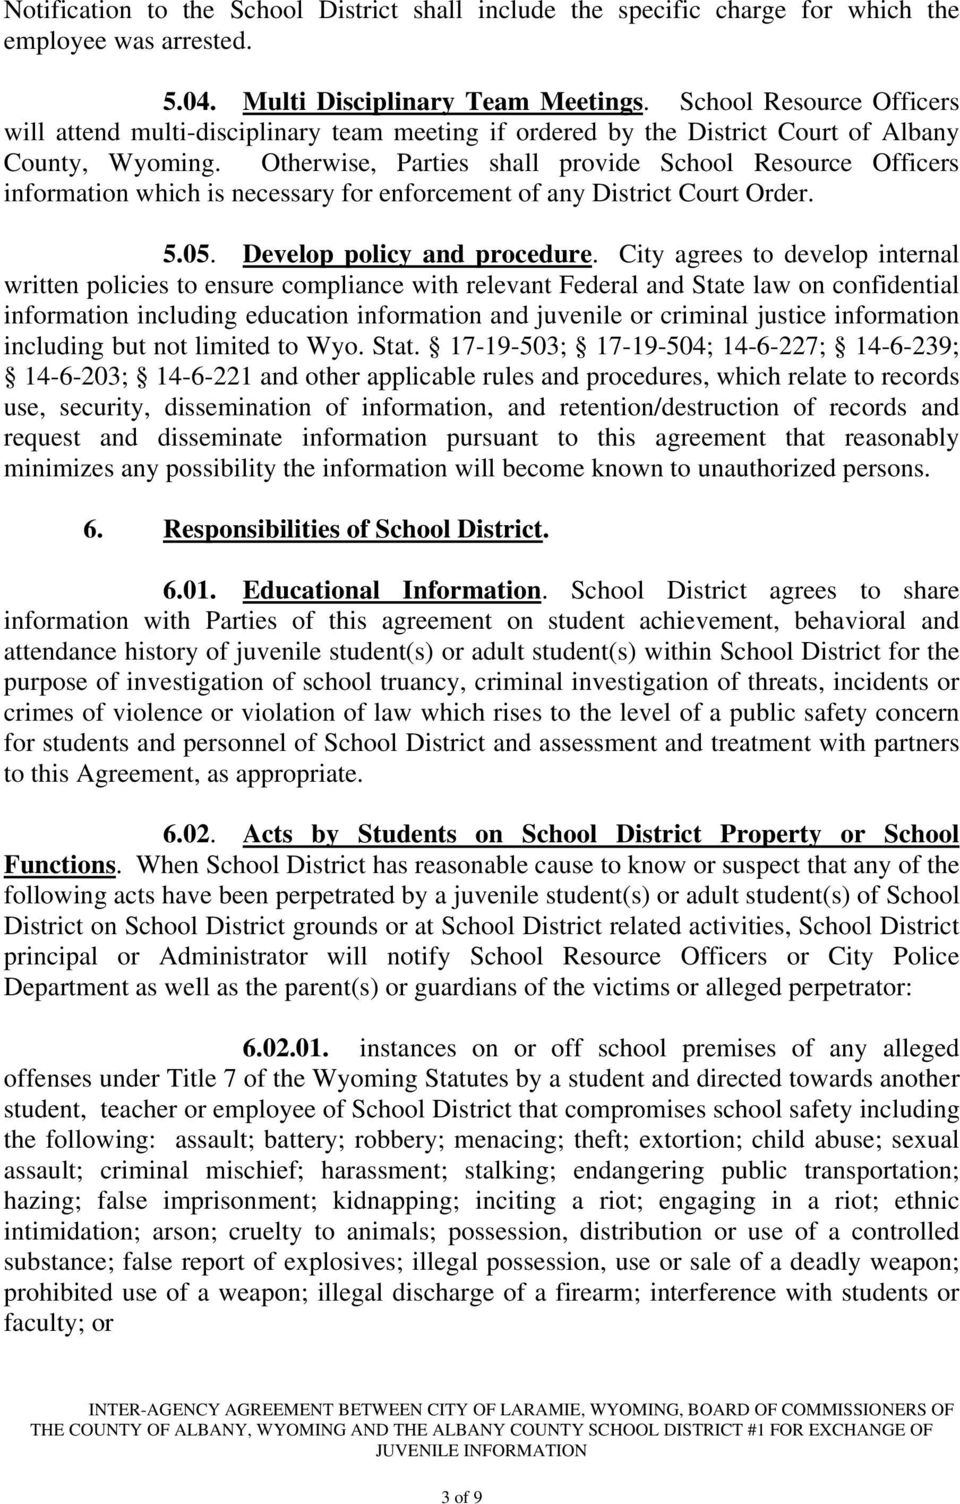 Otherwise, Parties shall provide School Resource Officers information which is necessary for enforcement of any District Court Order. 5.05. Develop policy and procedure.